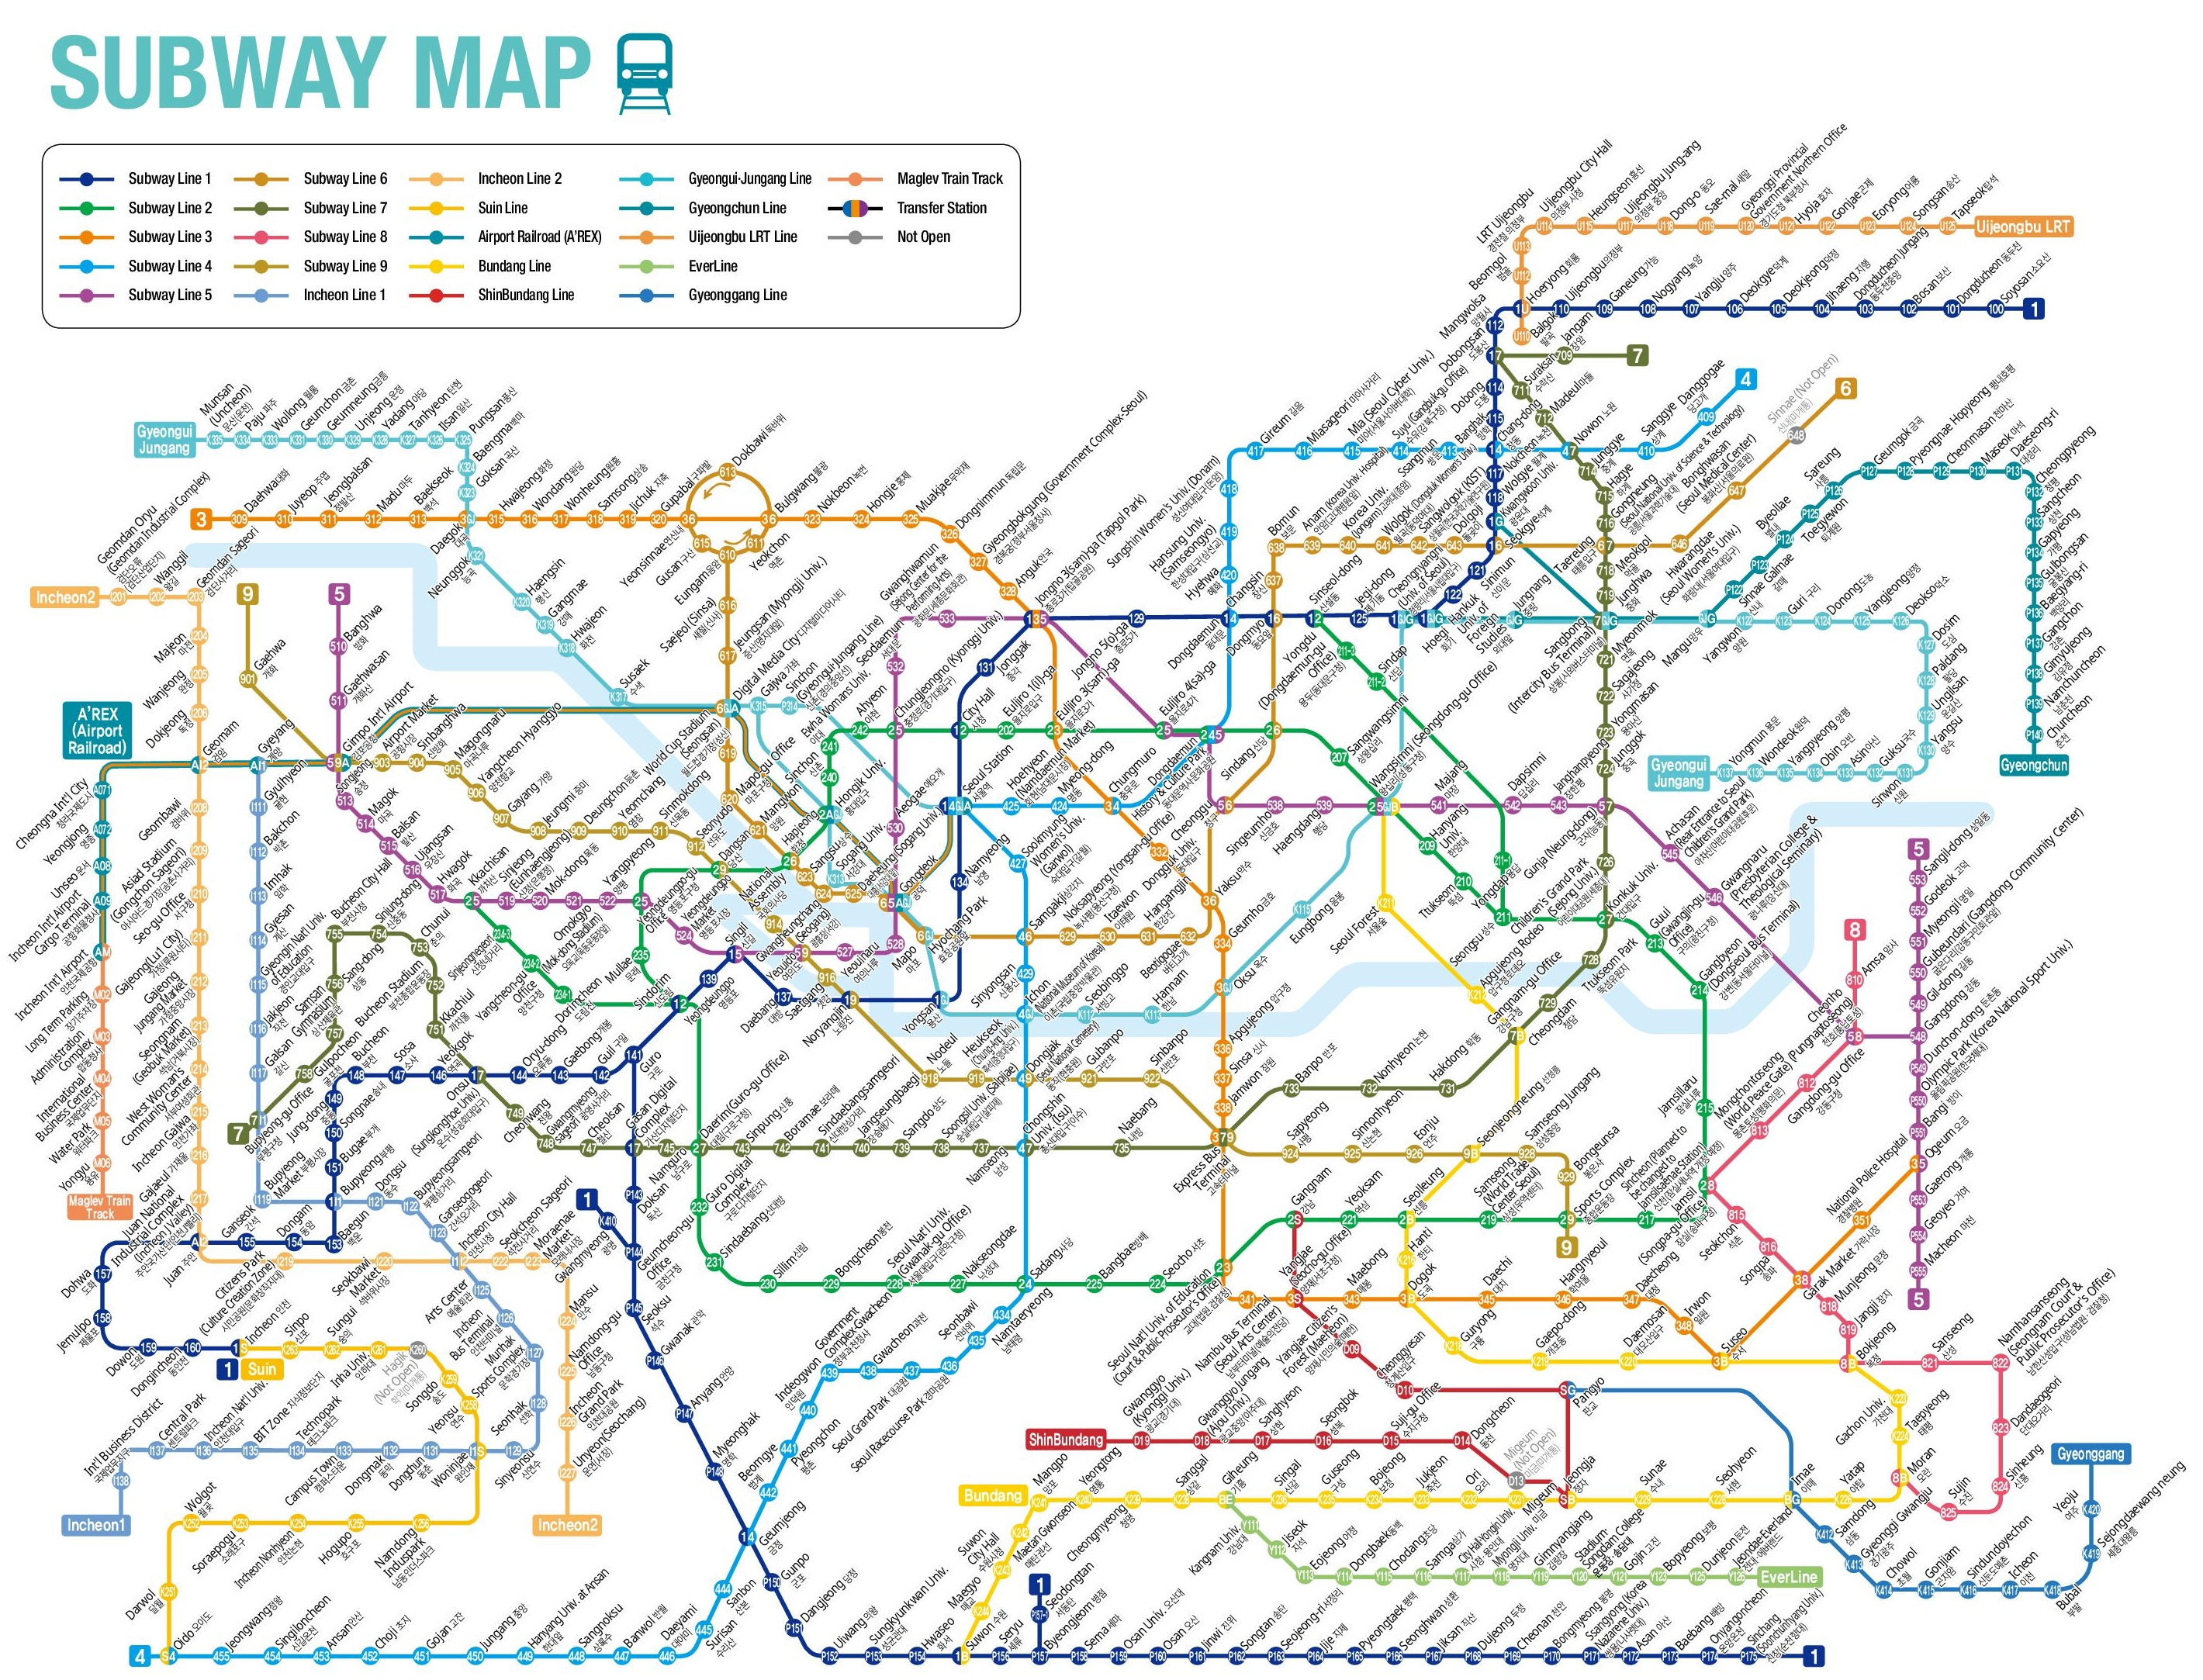 South Korea Subway Map